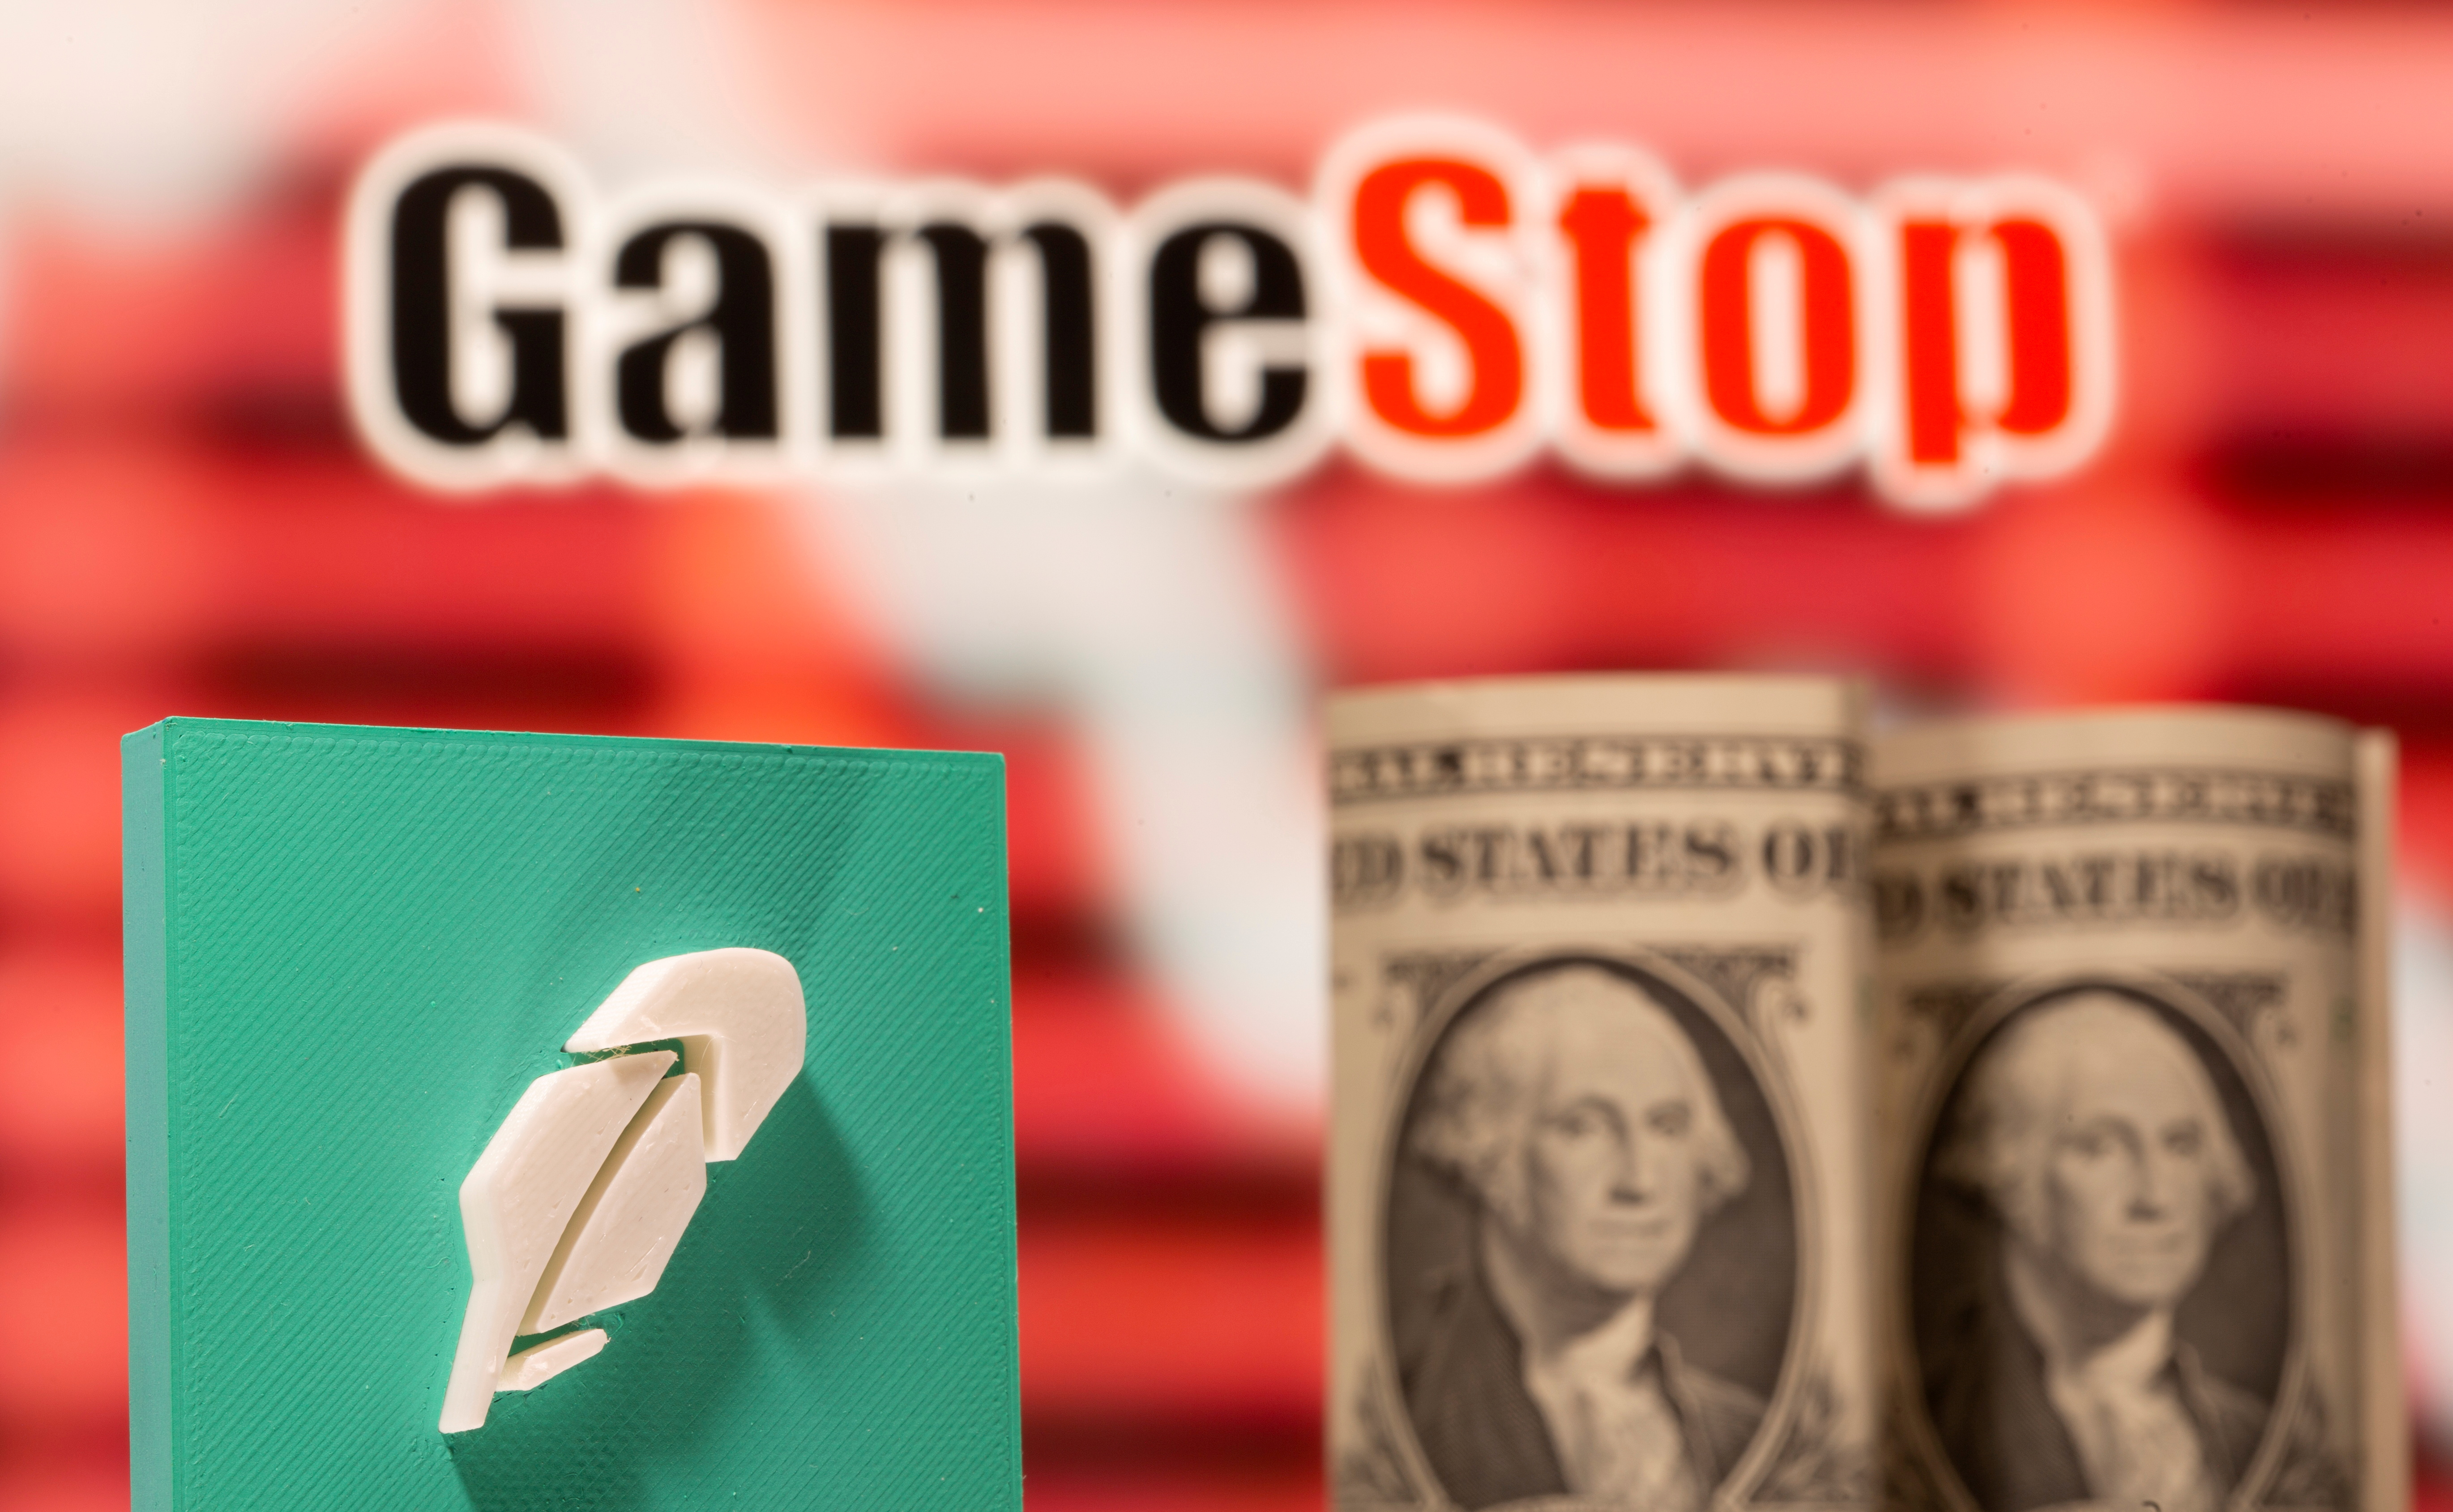 File photo: A 3d printed Robinhood logo and one dollar banknotes are seen in front of displayed GameStop logo in this illustration taken February 8, 2021. REUTERS/Dado Ruvic